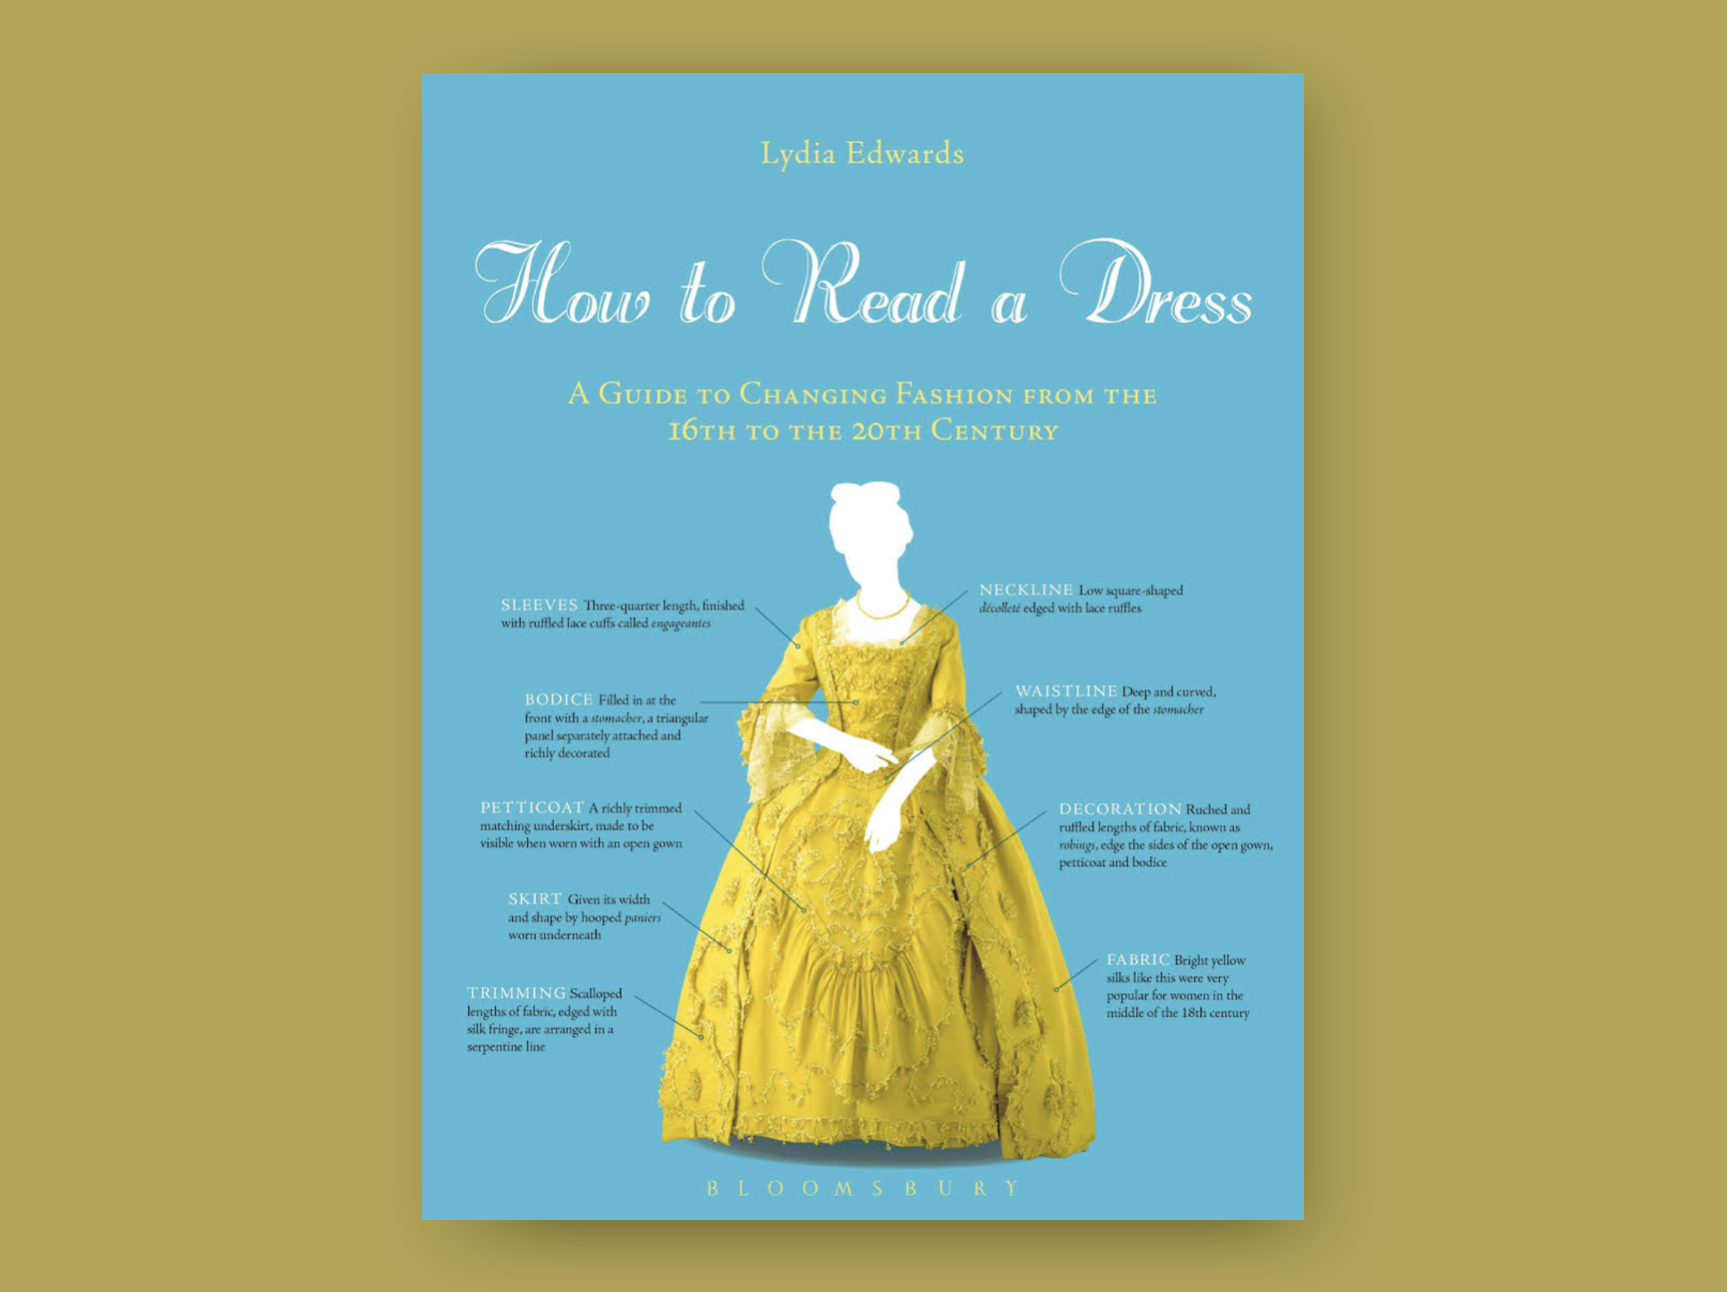 How to Read a Dress Image.png